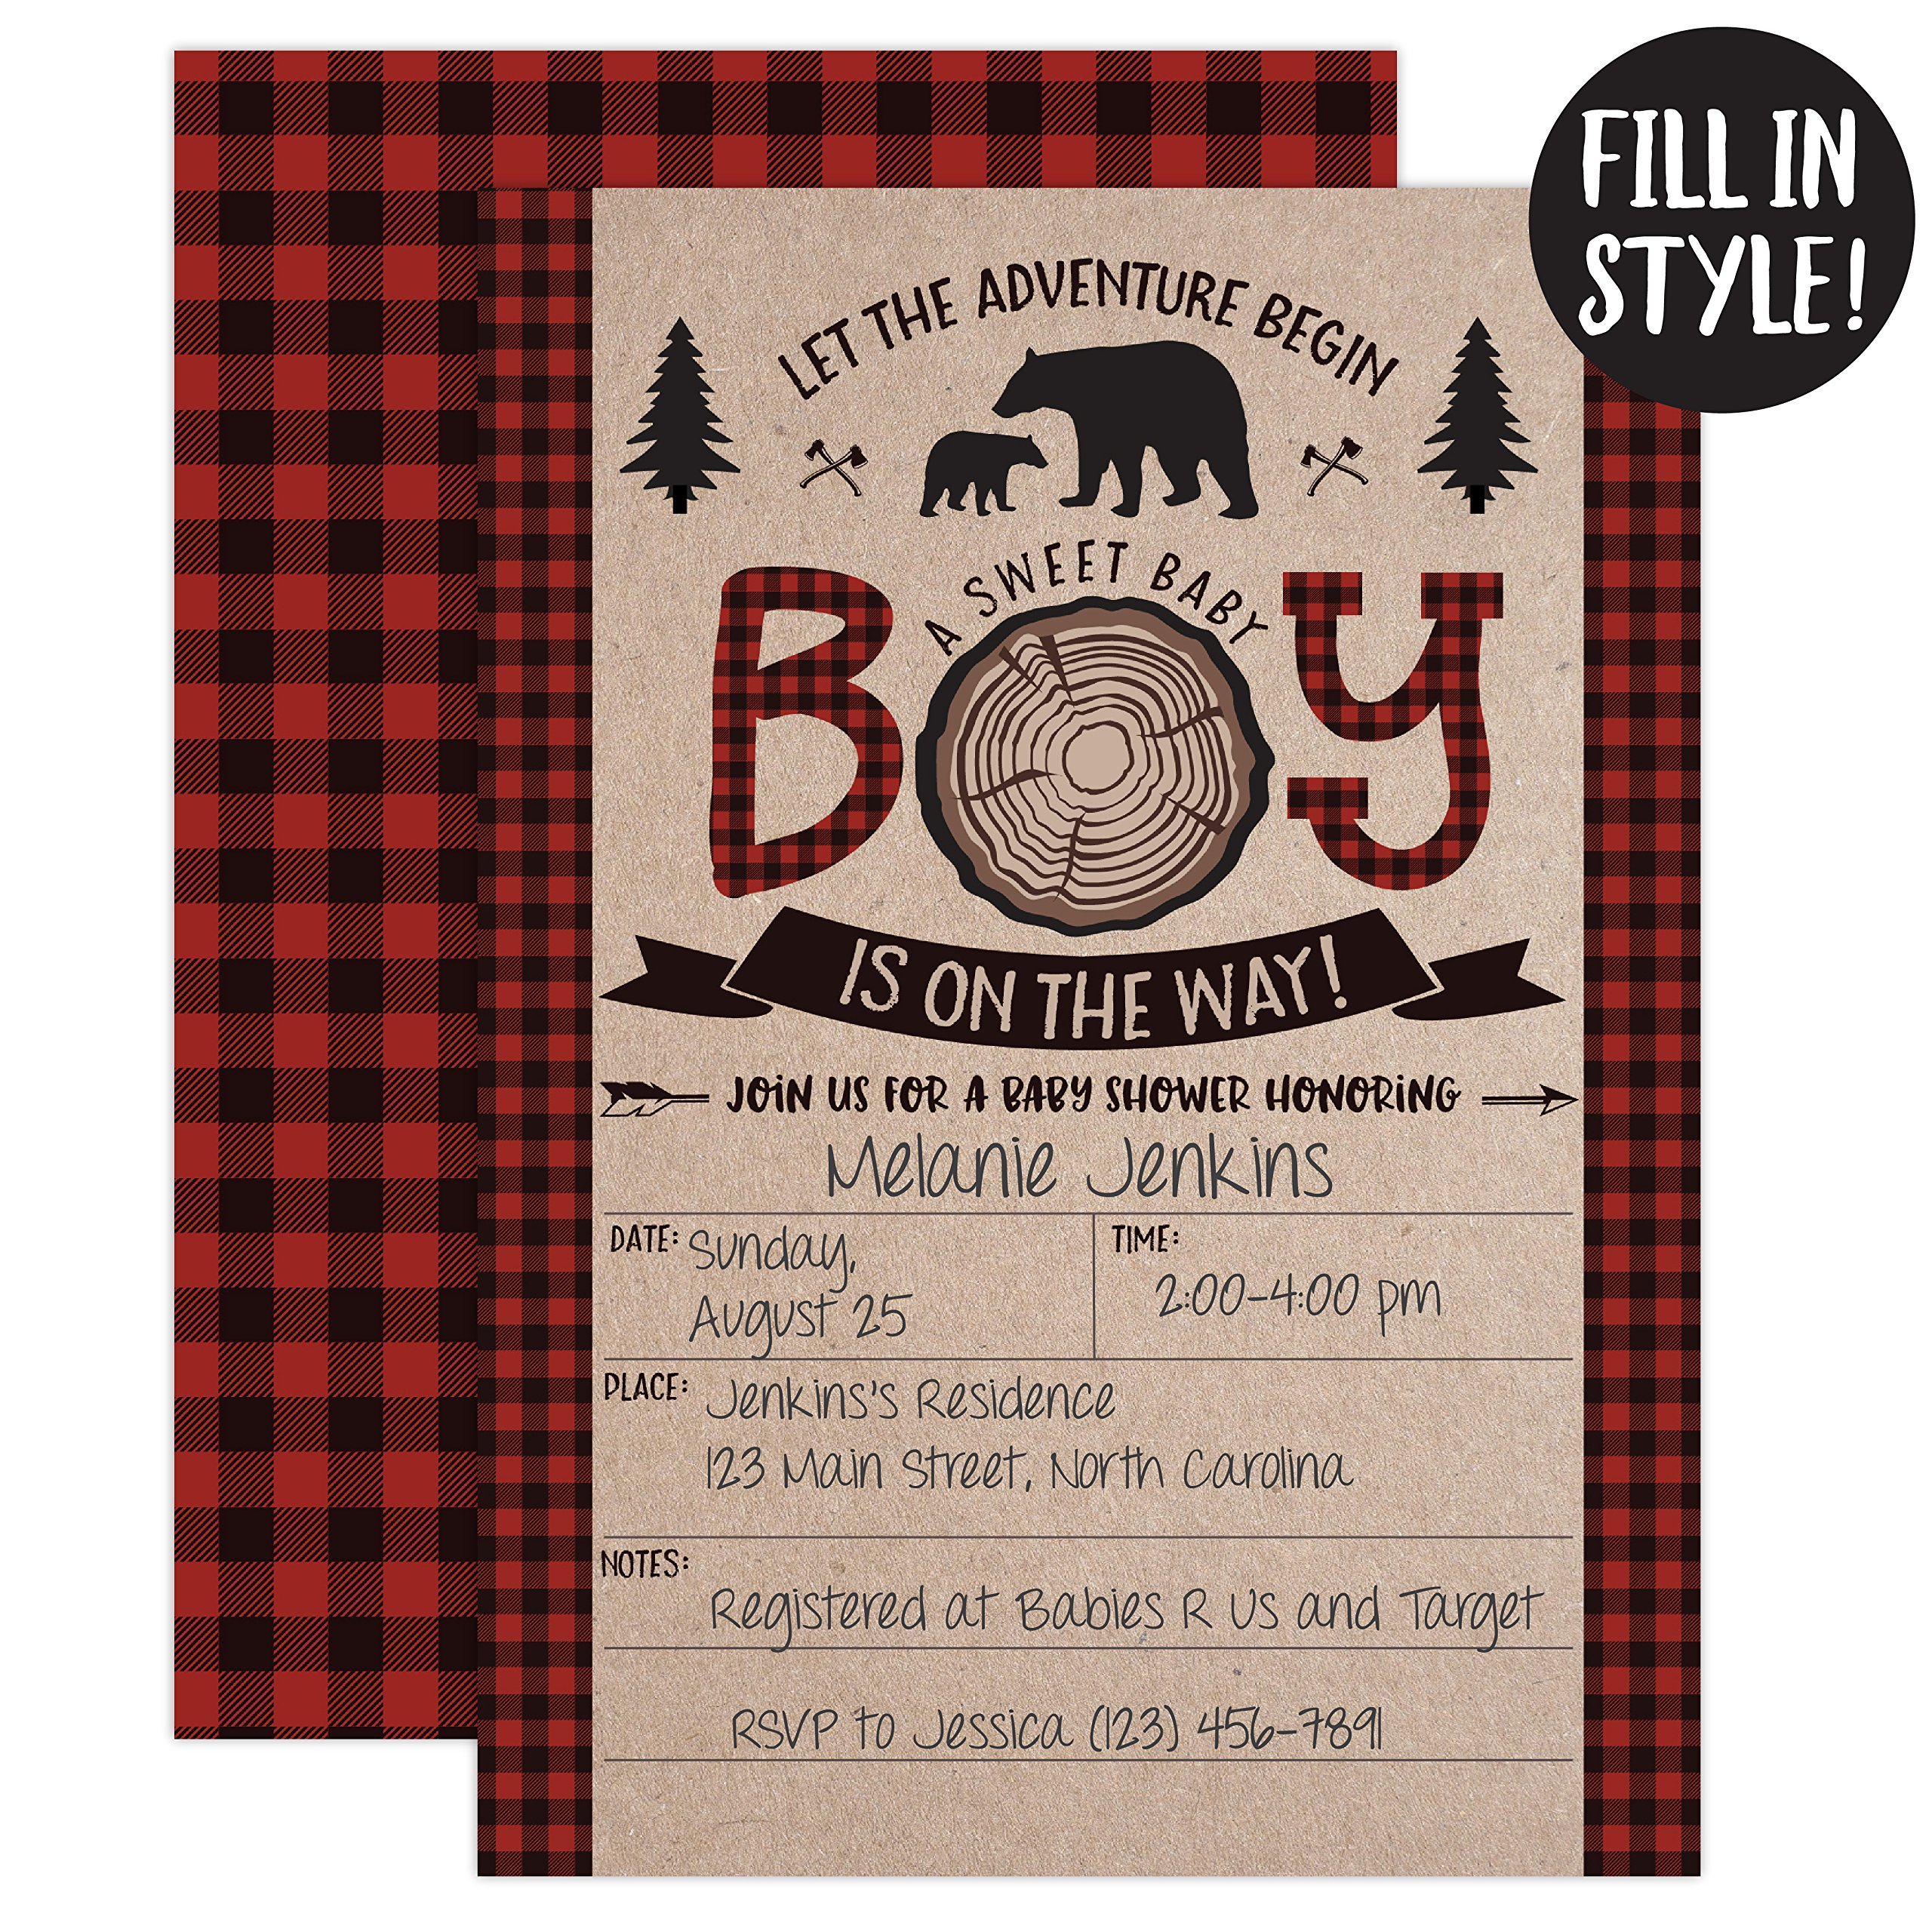 Lumberjack Baby Shower Invitations, Boy Baby Shower Invitations, Mama Bear Baby Shower Invites, Woodland Baby Shower Invitations, 20 Fill in Invitations and Envelopes by Your Main Event Prints (Image #2)